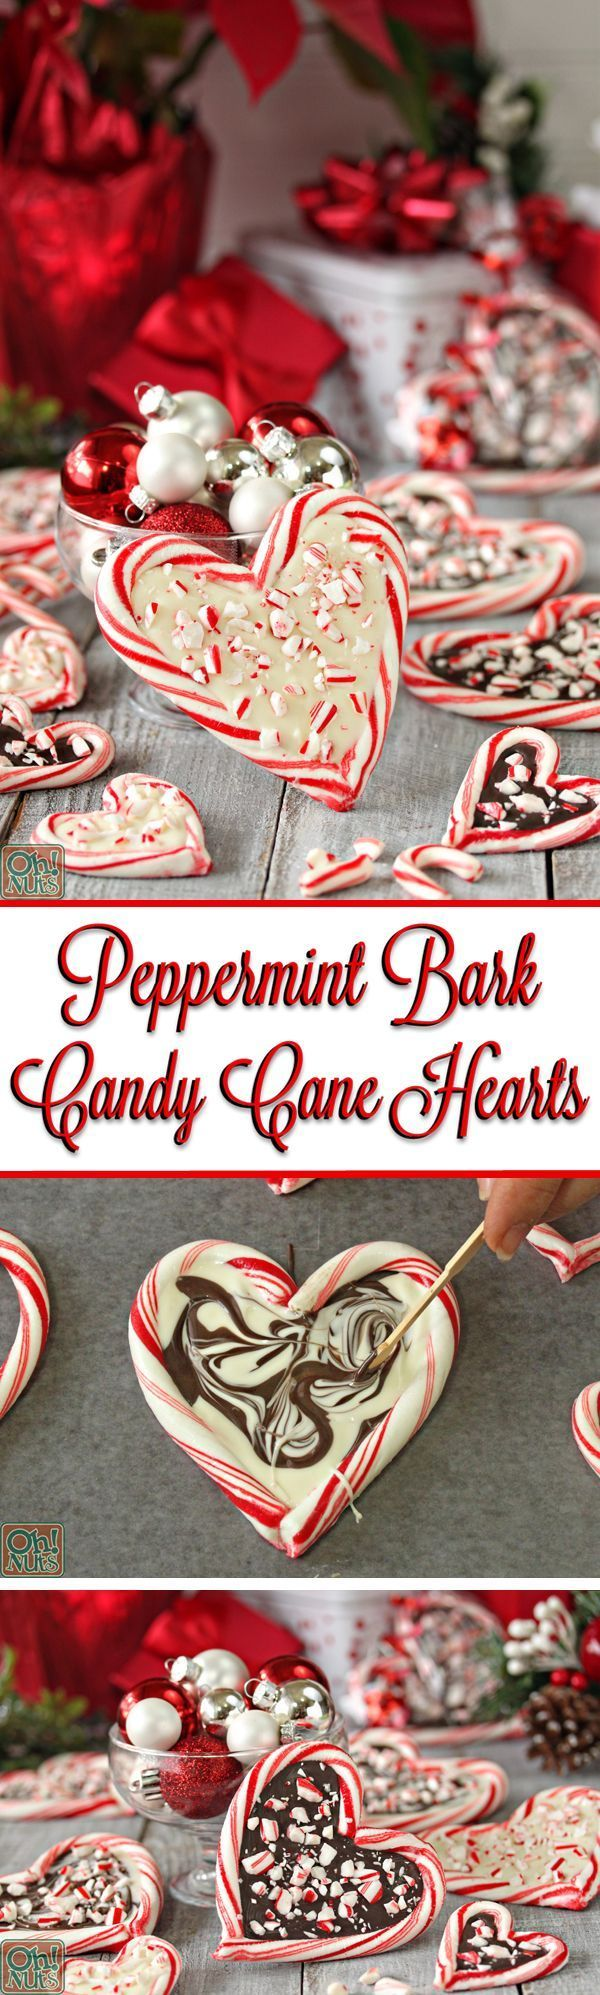 Peppermint Bark Candy Cane Hearts - Christmas candy that's easy to make, looks beautiful, tastes delicious, and is perfect for gift giving!